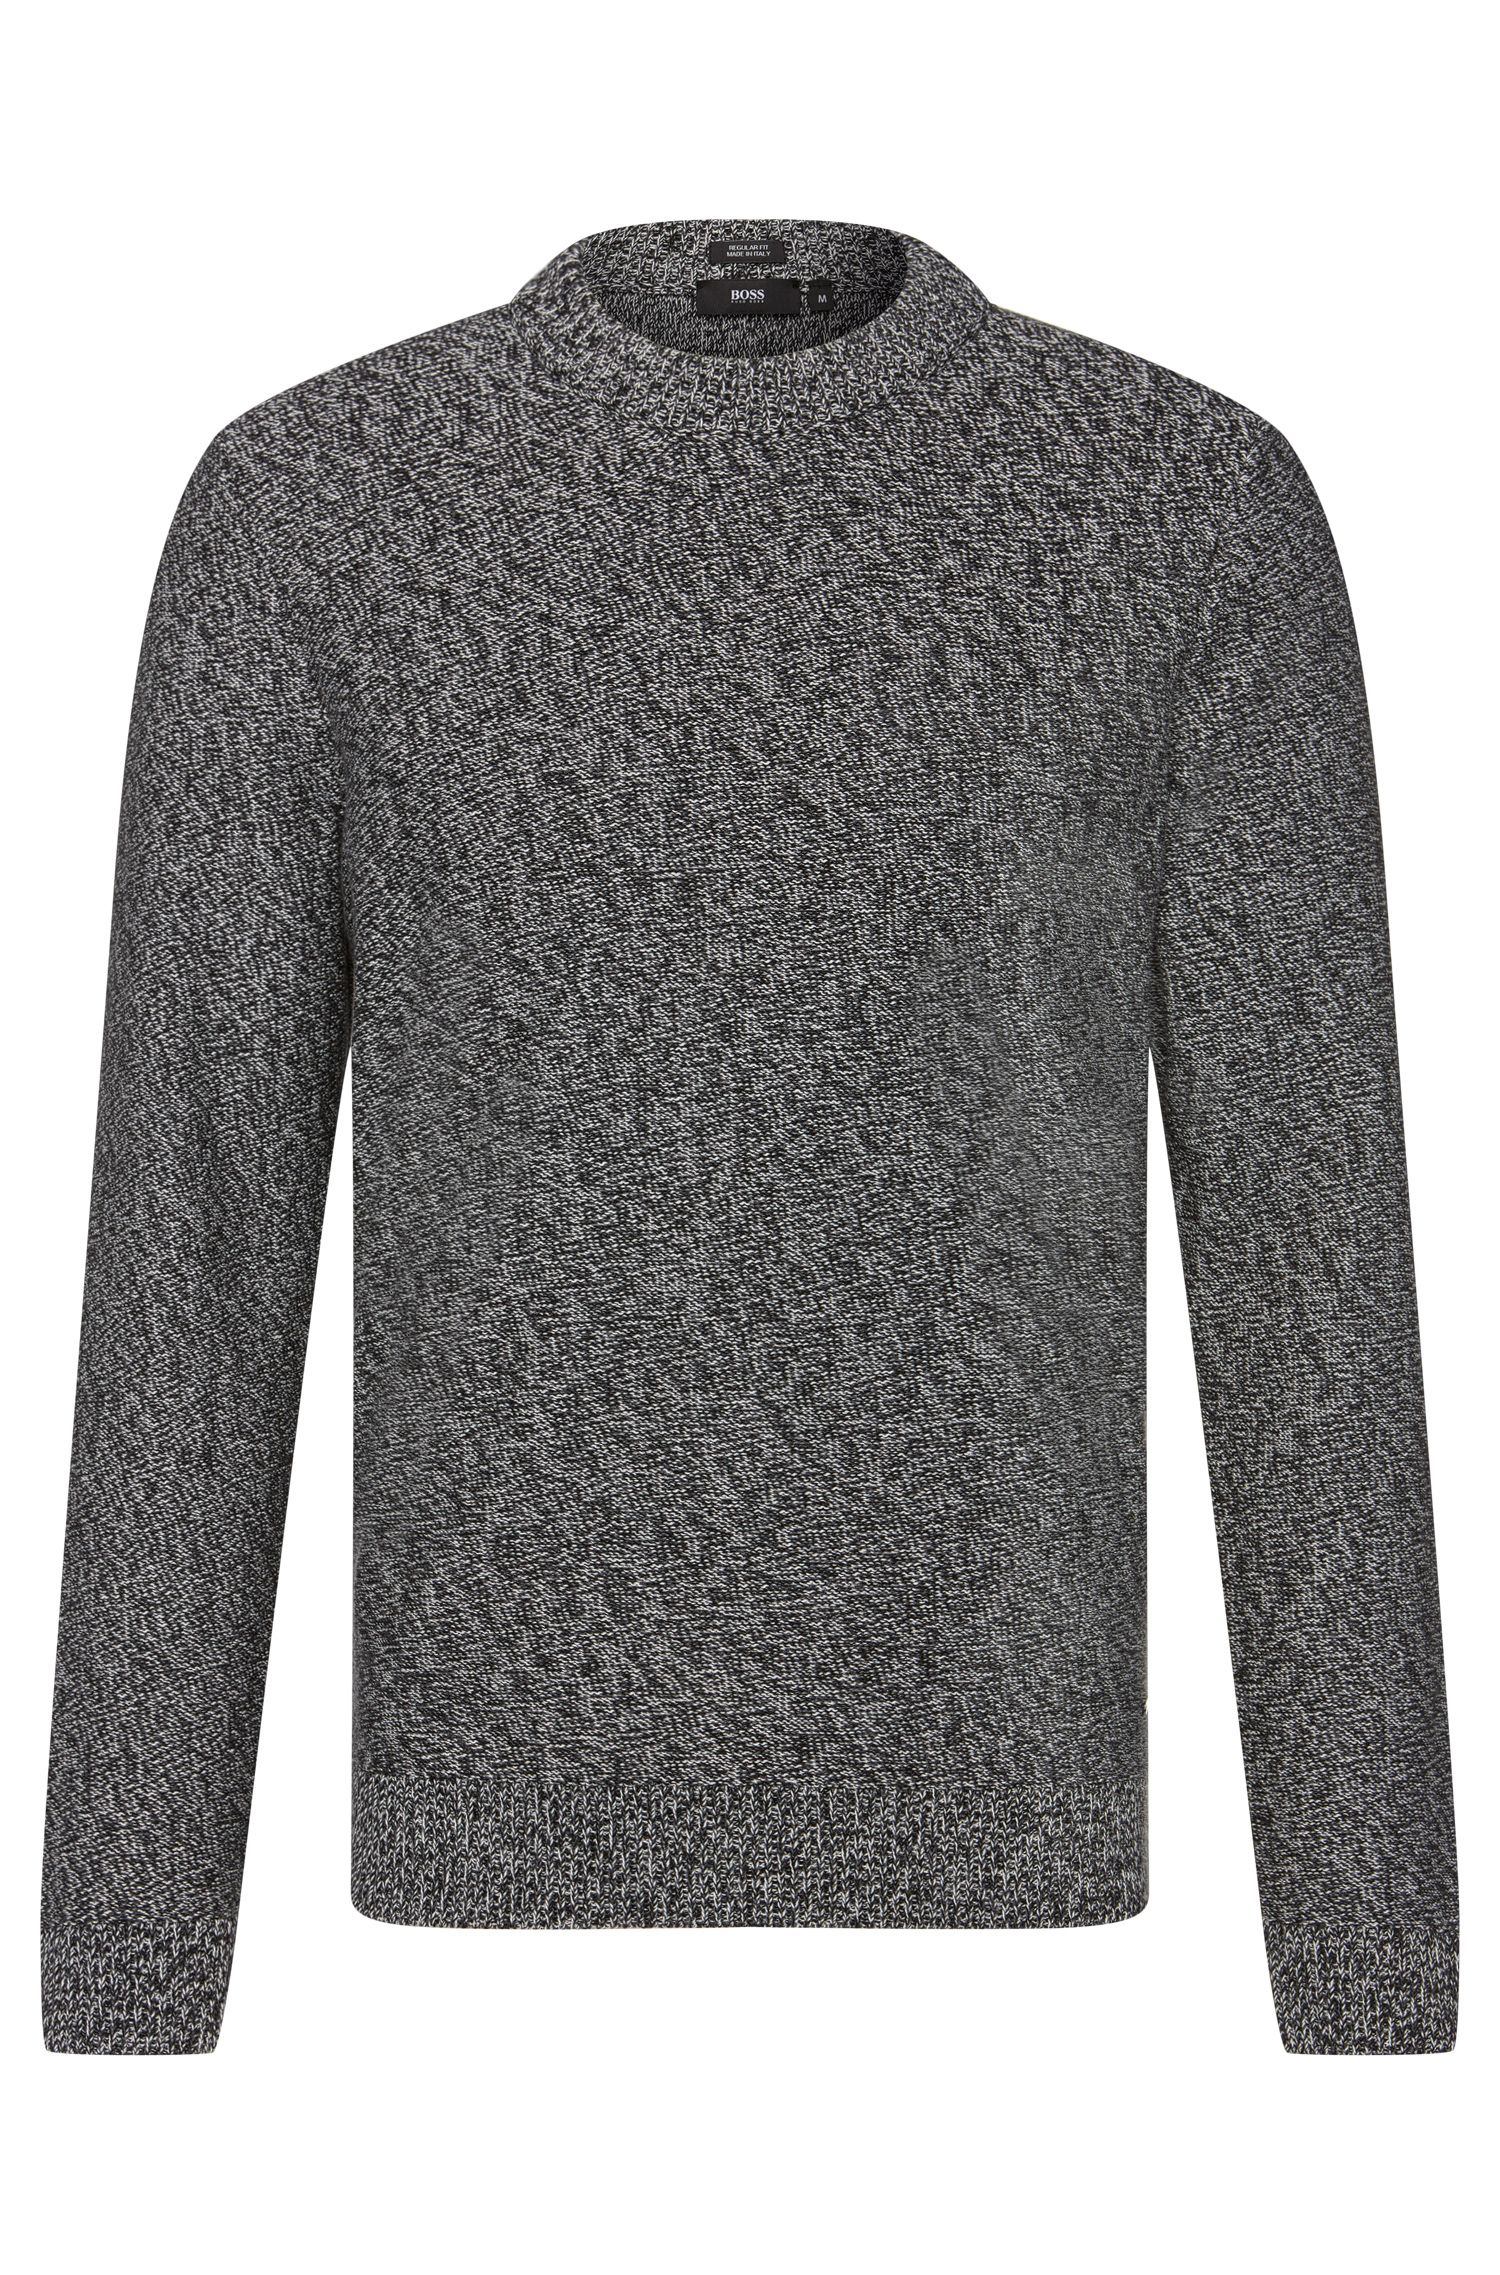 Mottled regular-fit sweater in cotton: 'Igus'